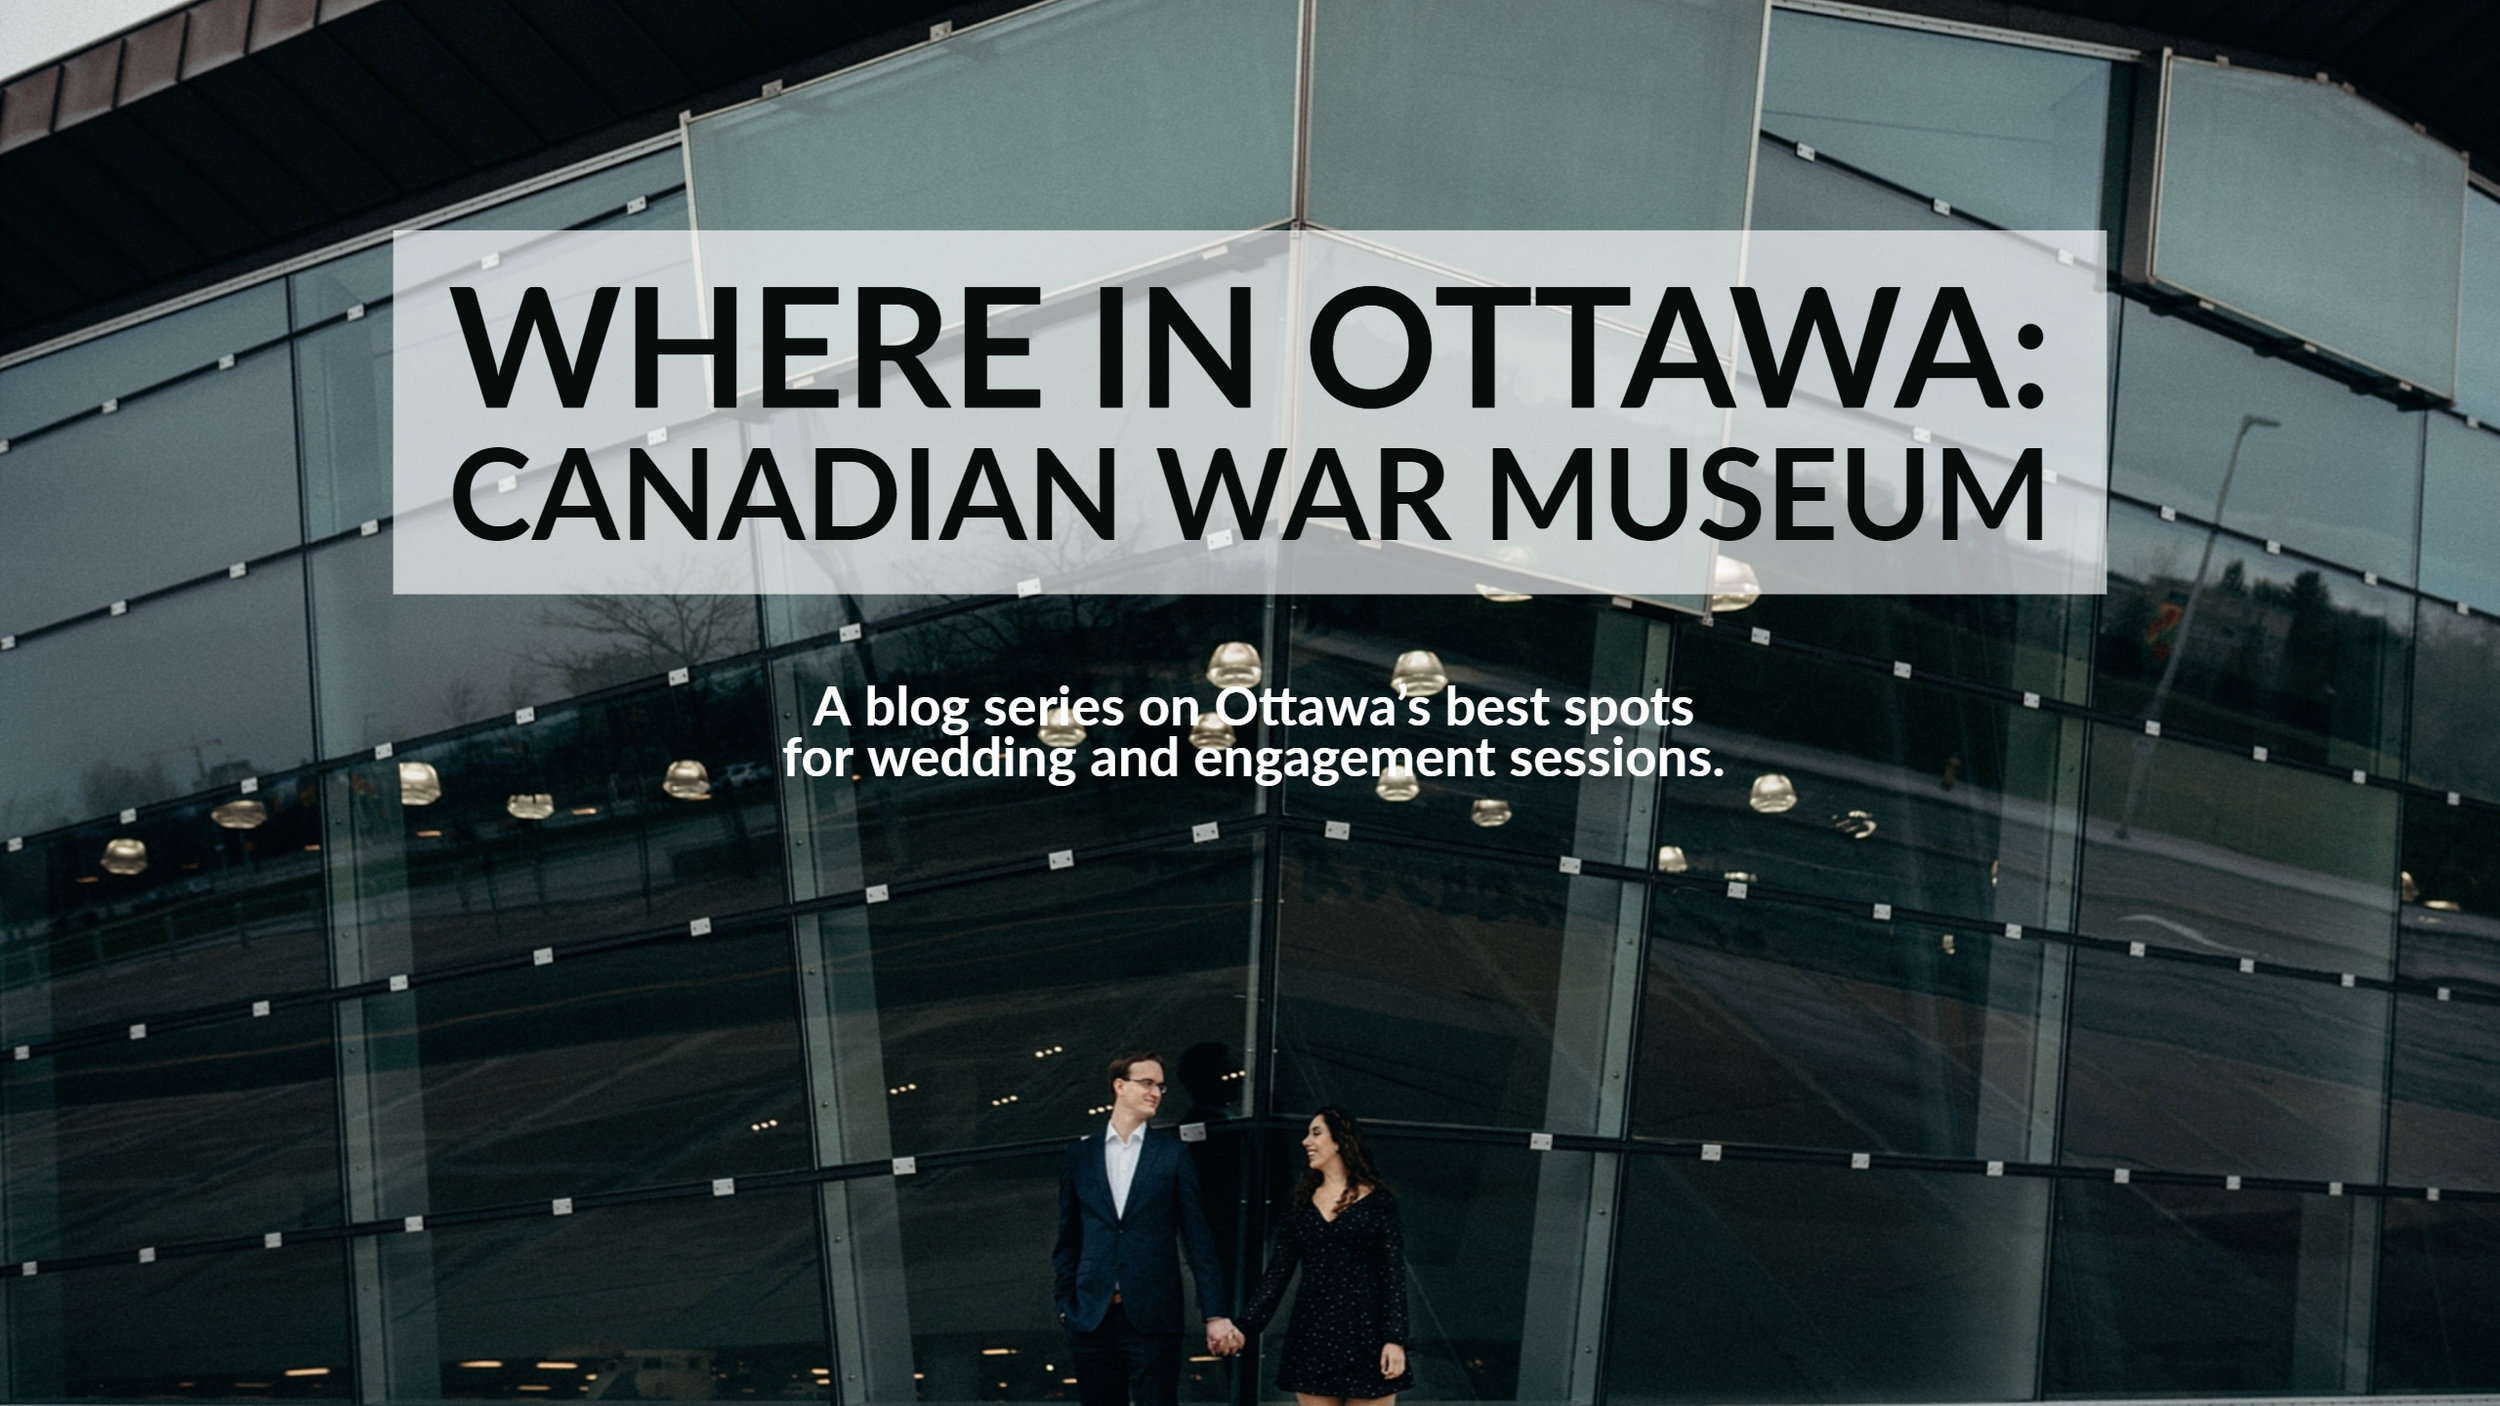 War Museum Engagement Picture Mocha Tree Studios Ottawa Toronto Montreal Wedding and Engagement Photographer and Videographer Dark Moody Intimate Authentic Modern Romantic Cinematic Best Candid